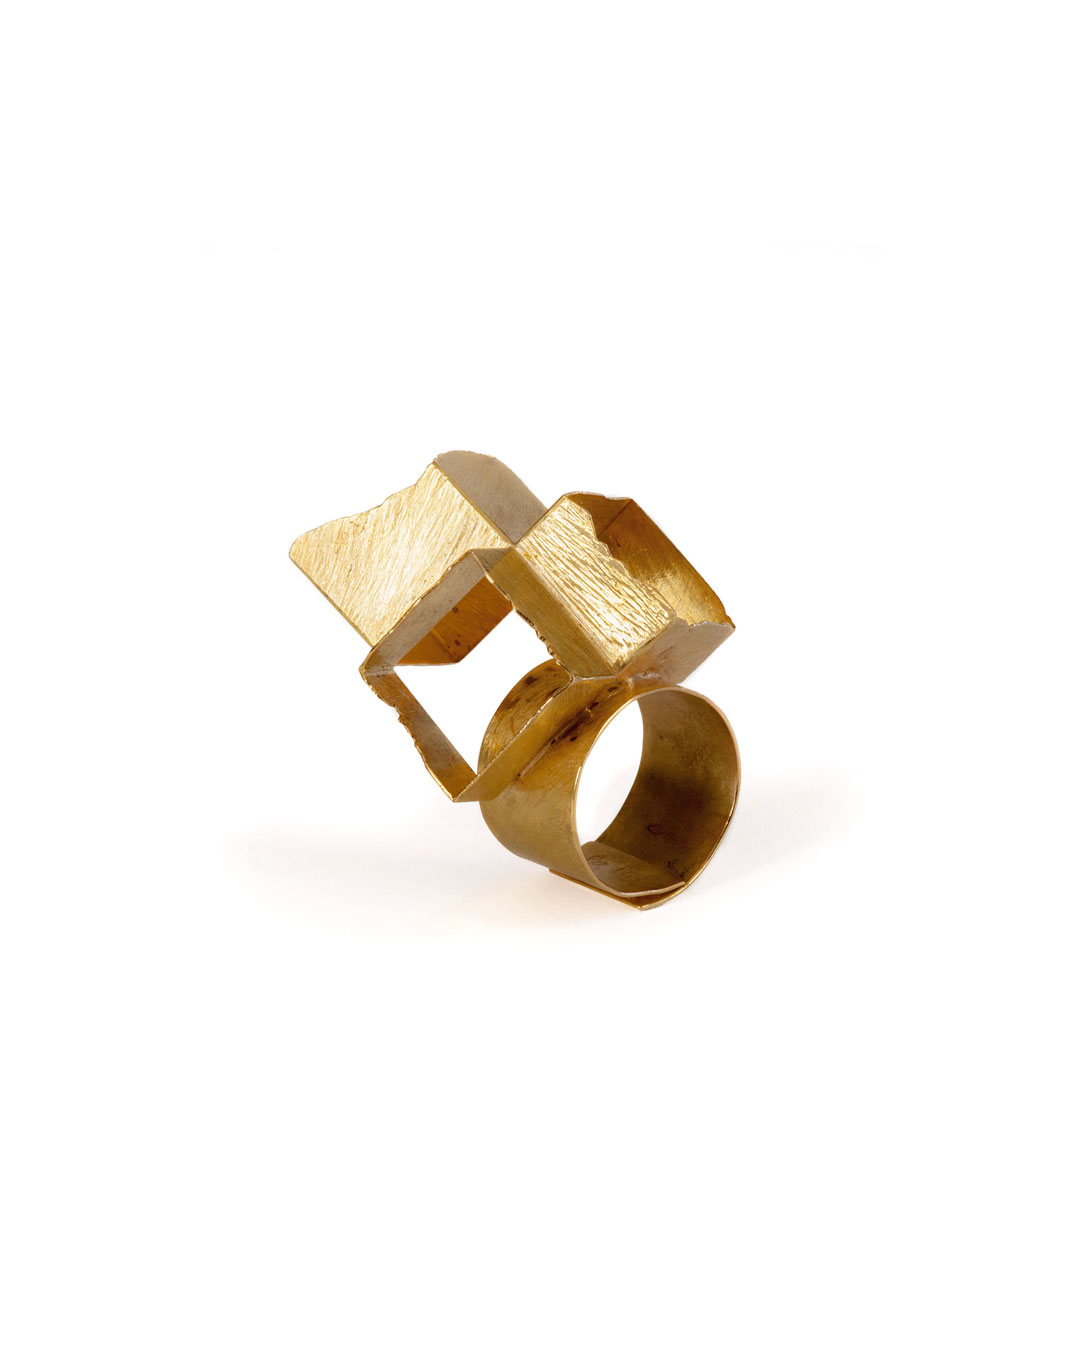 Stefano Marchetti, untitled, 2008, ring; gold, 50 x 30 x 30 mm, €3700